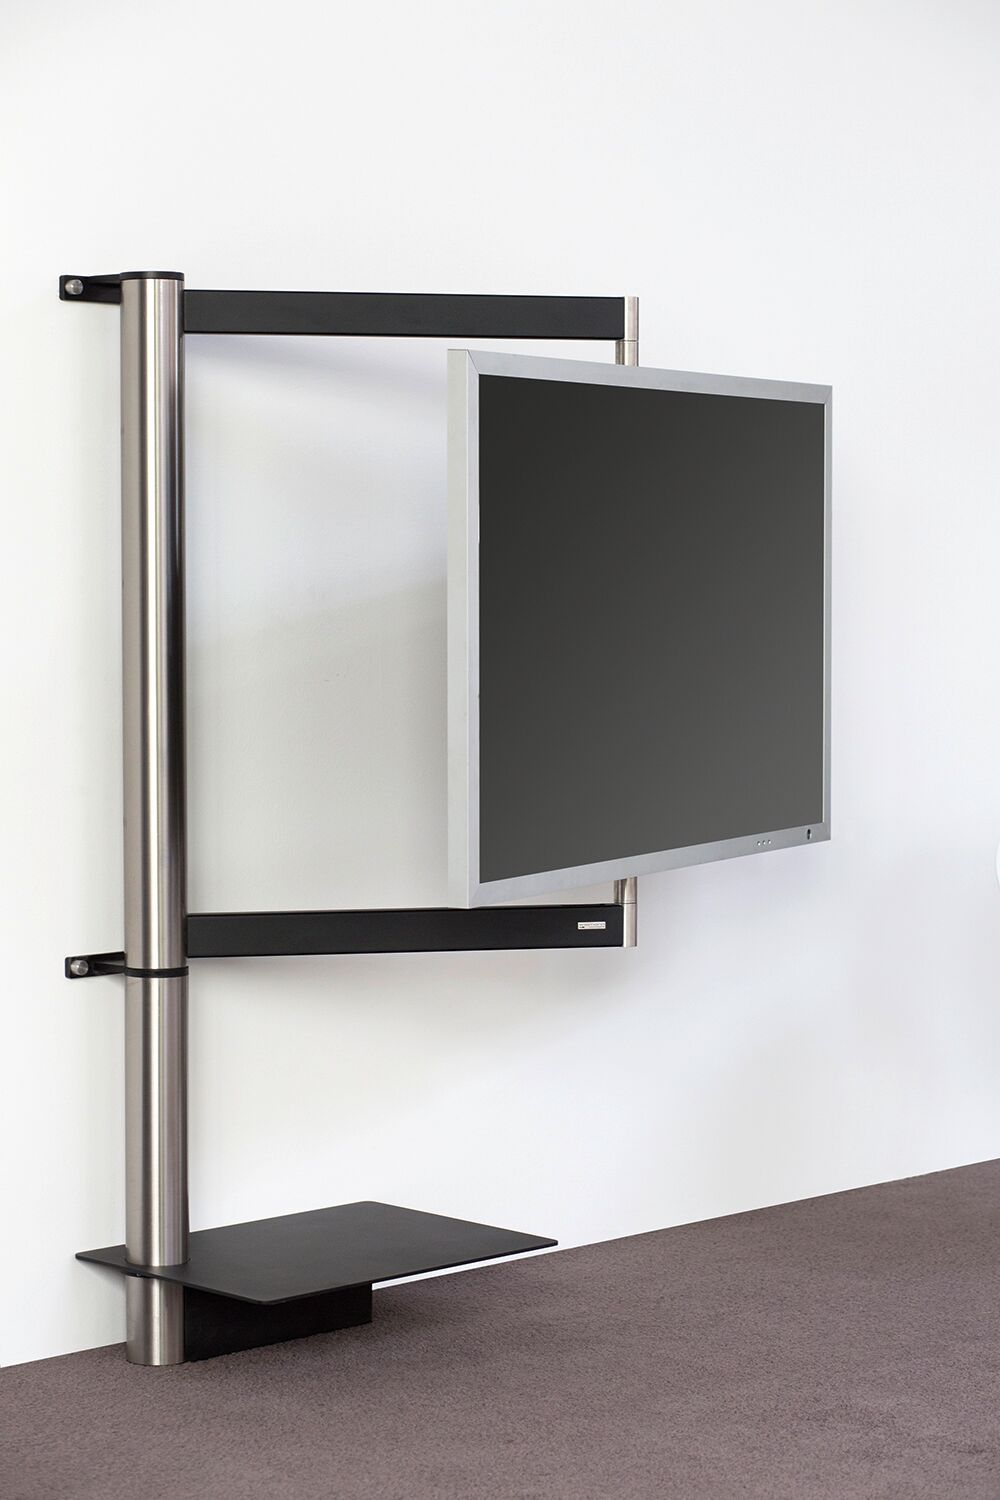 Wandhalterung Fernseher Tv Mount Stand Swivel Function For Perfect View From Any Place